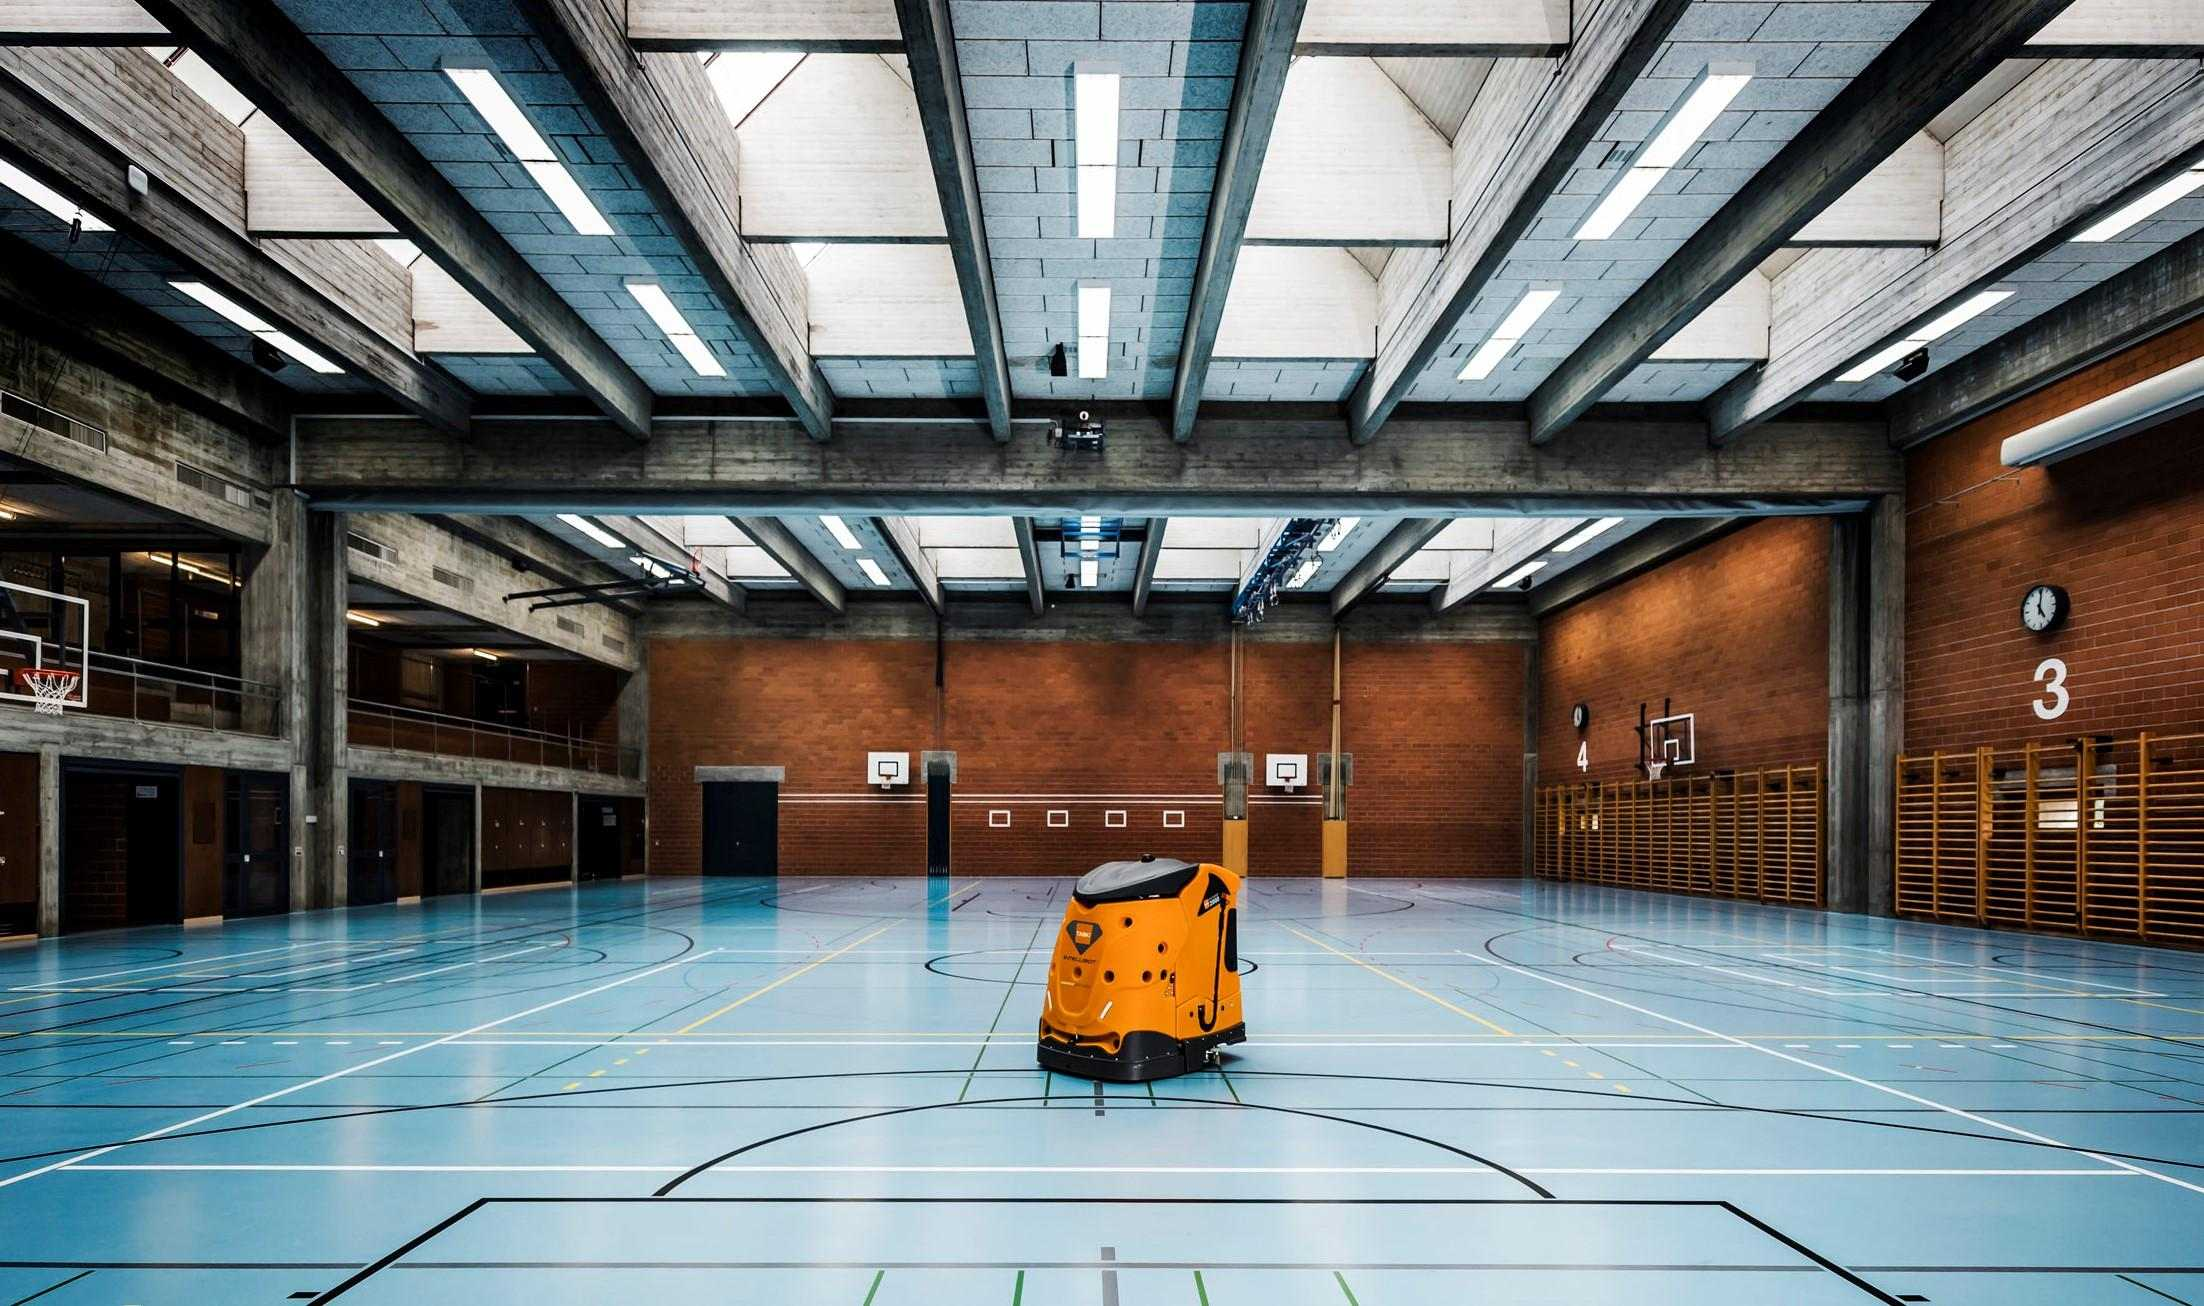 Swingobot_2000_Turnhalle_125